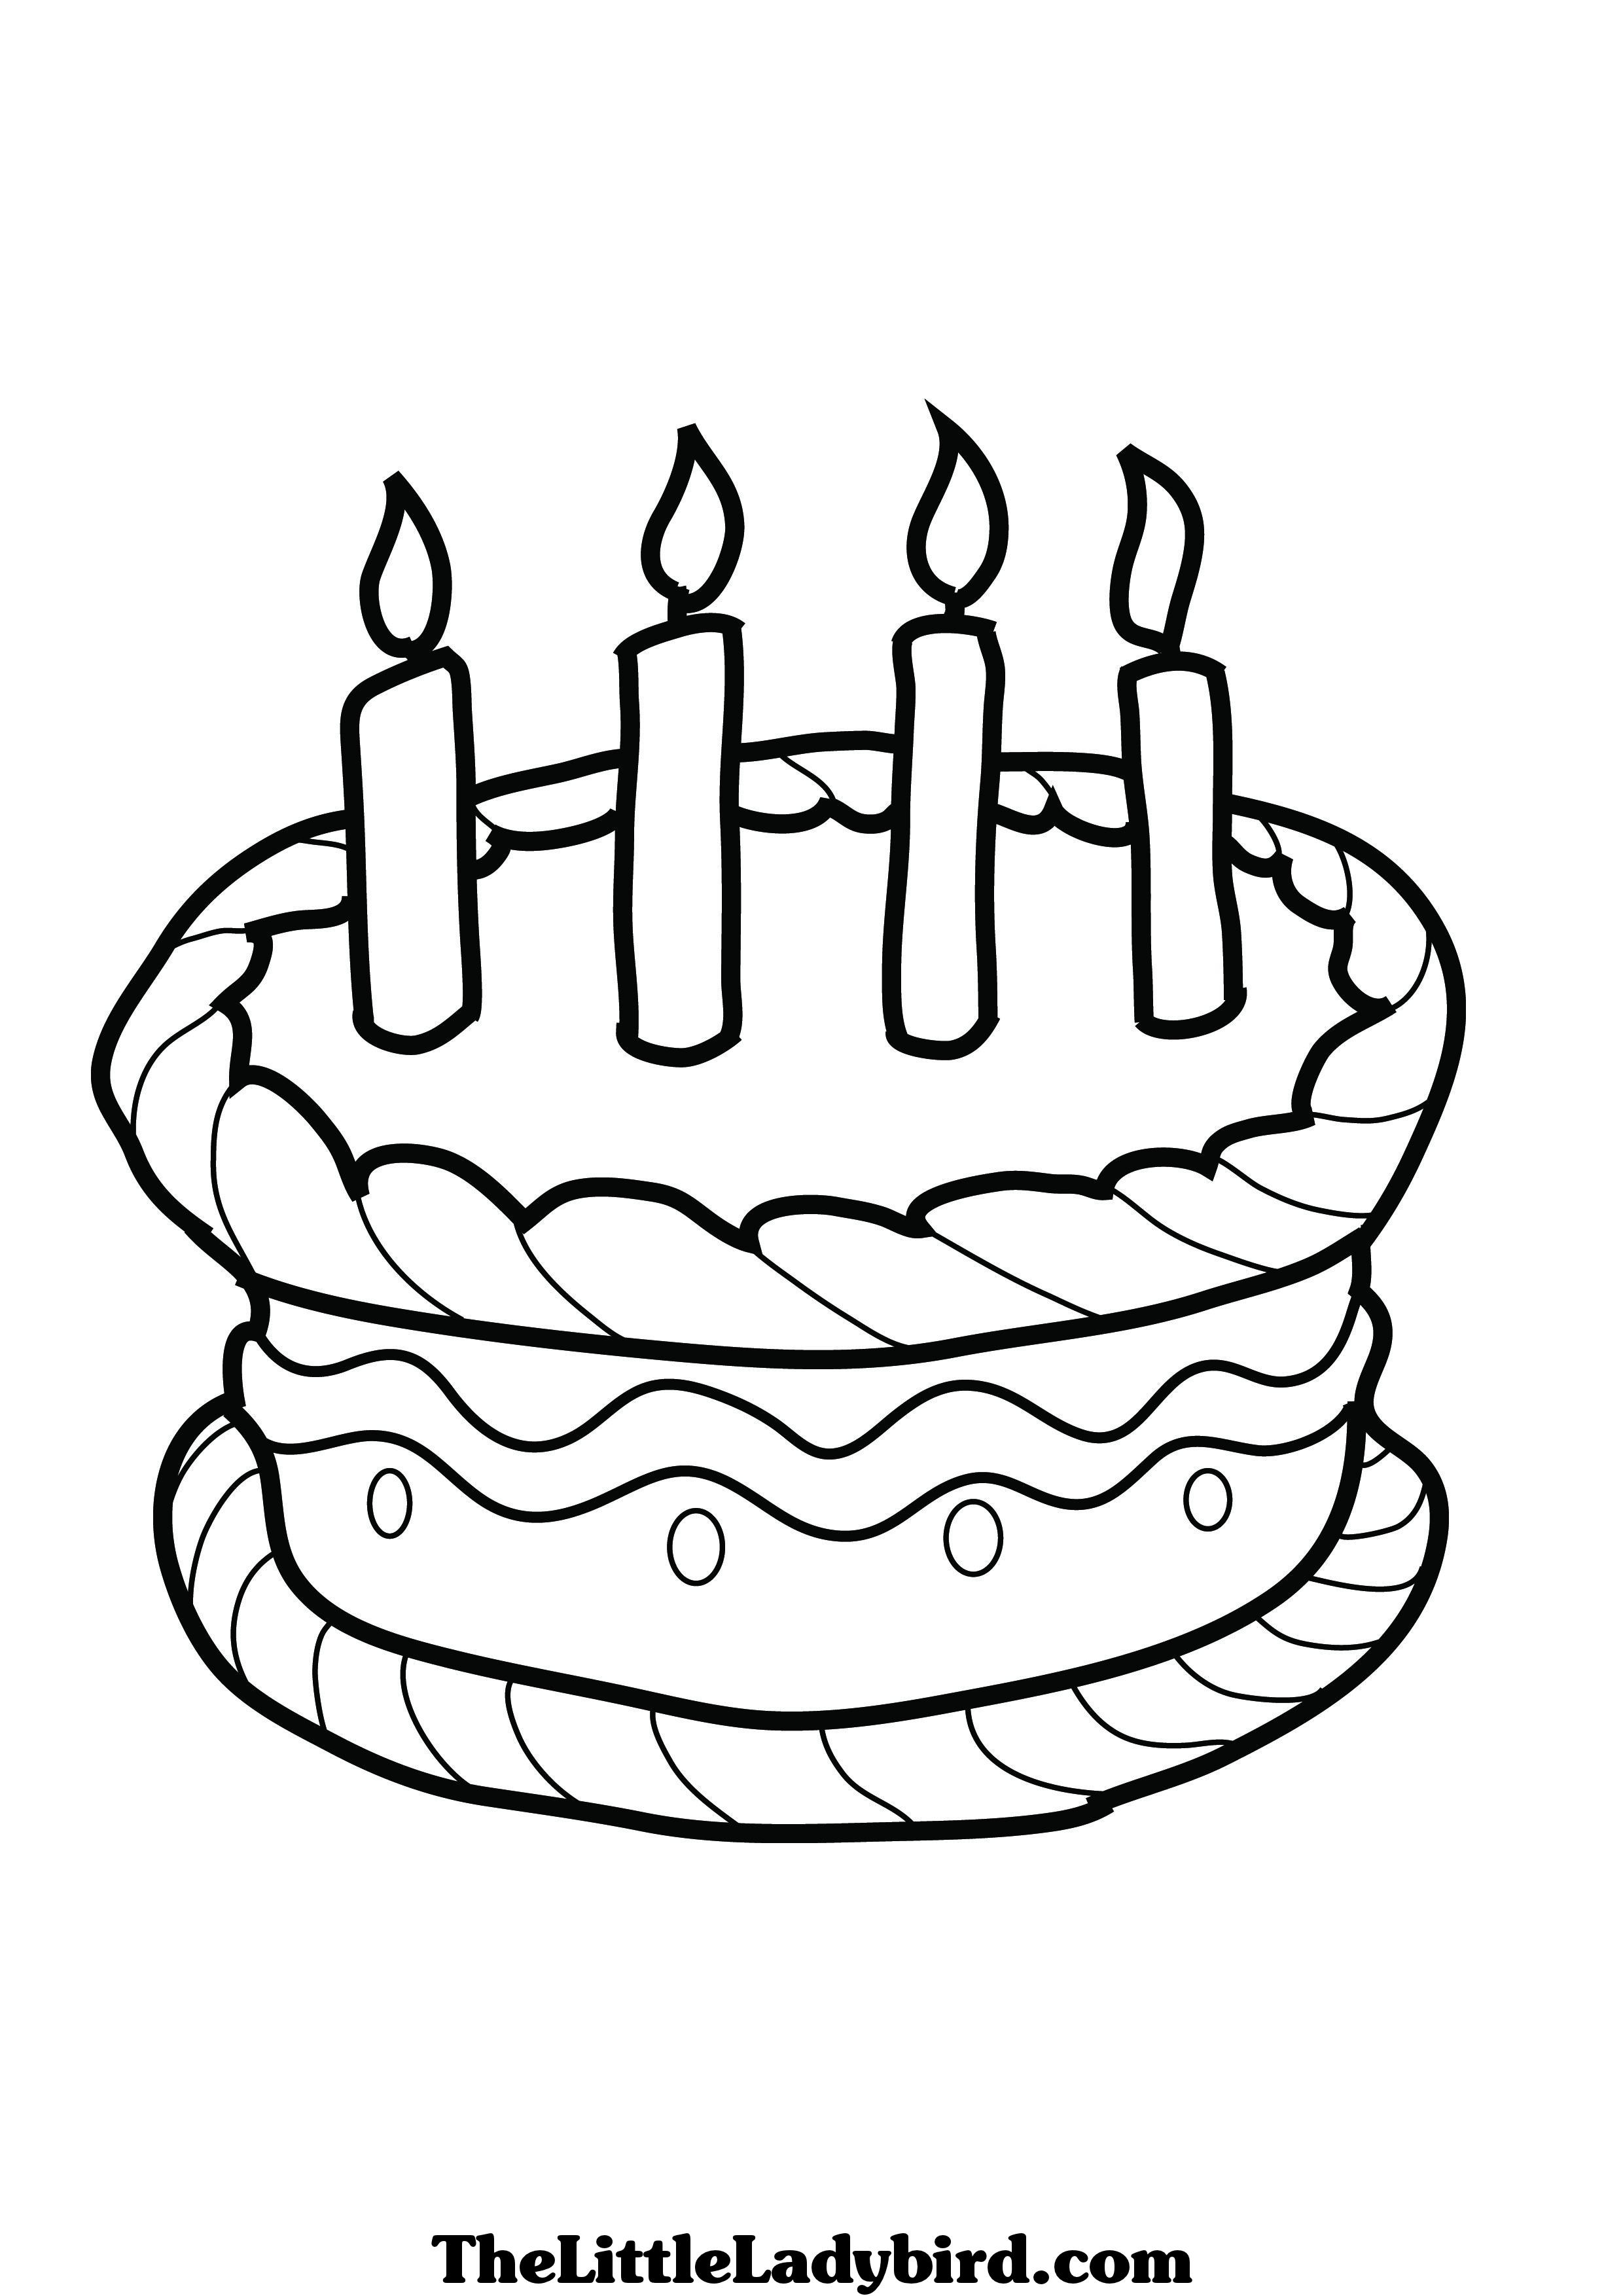 birthday cake coloring page ; Birthday_cake_coloring_pages-2